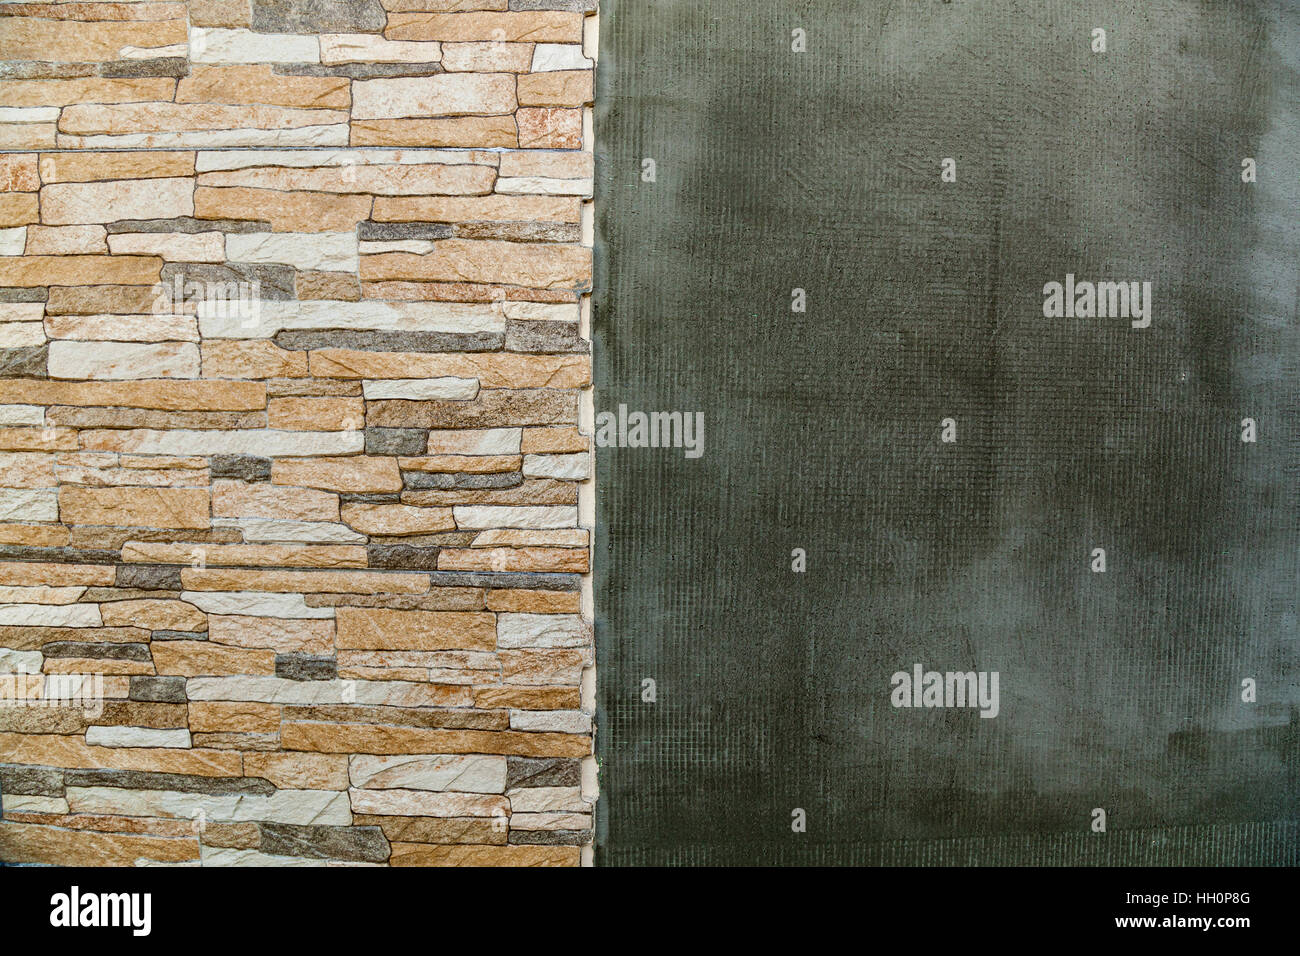 Brick and plaster. Brick and plaster wall as abstract background. - Stock Image